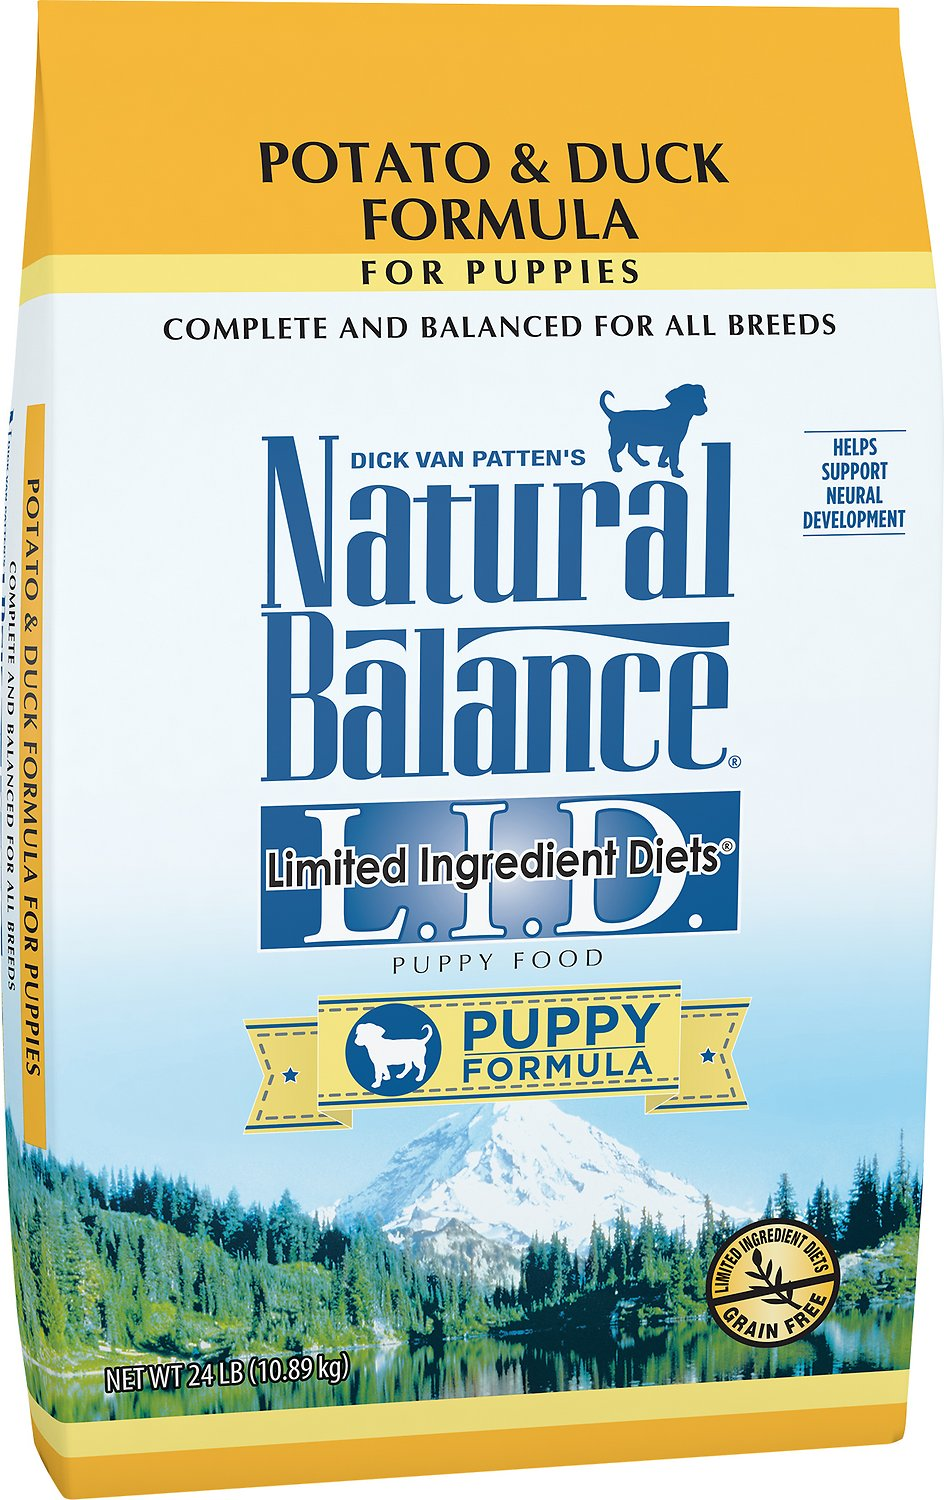 Natural Balance L.I.D. Limited Ingredient Diets Puppy Formula Potato & Duck Formula Grain-Free Dry Dog Food, 4-lb